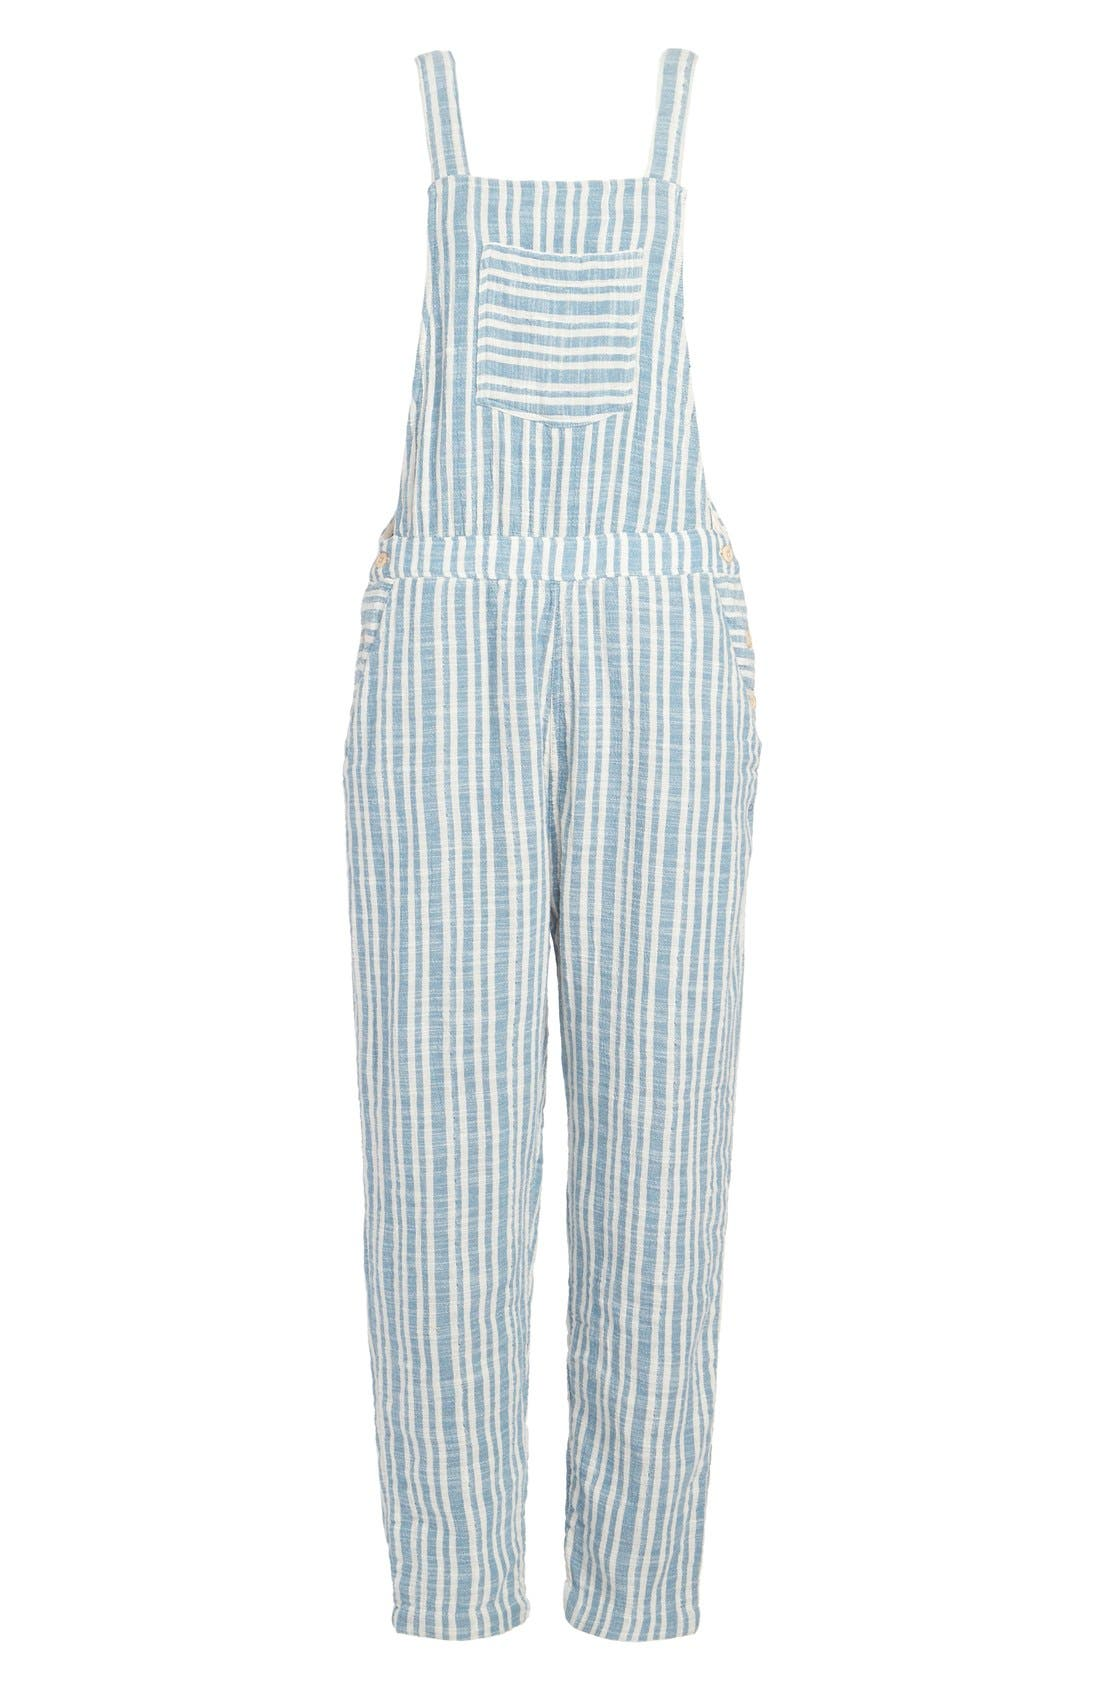 ace&jig Overalls, Main, color, 020